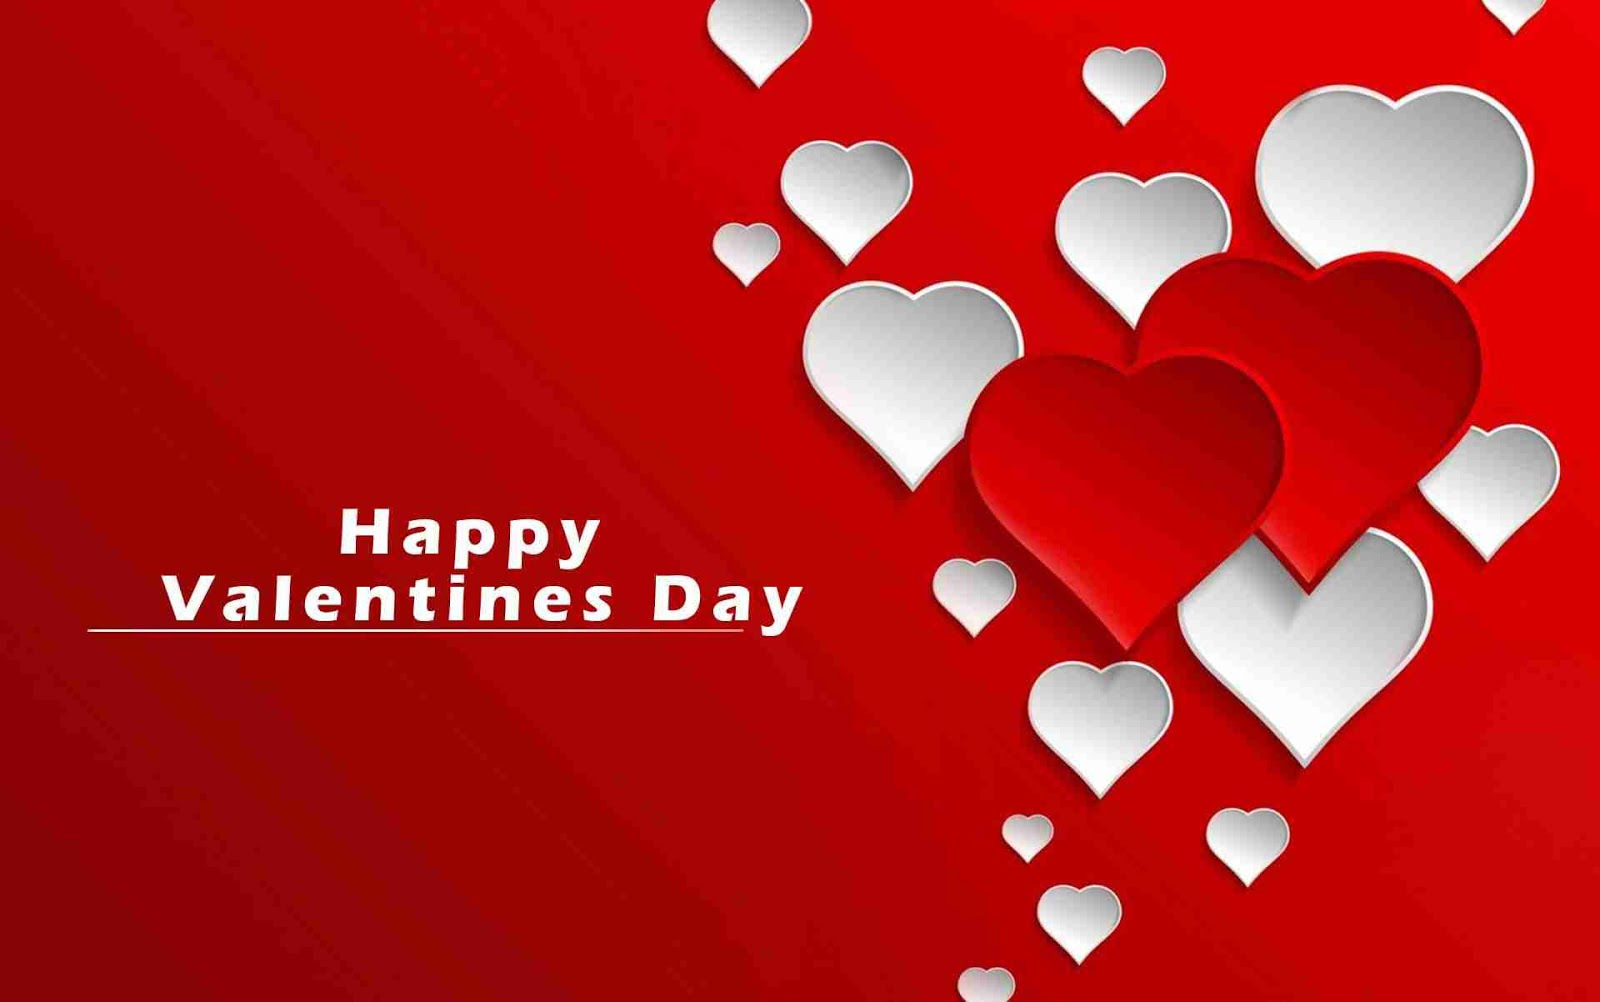 Happy Valentines Day 2018 Images Messages Status Song Video